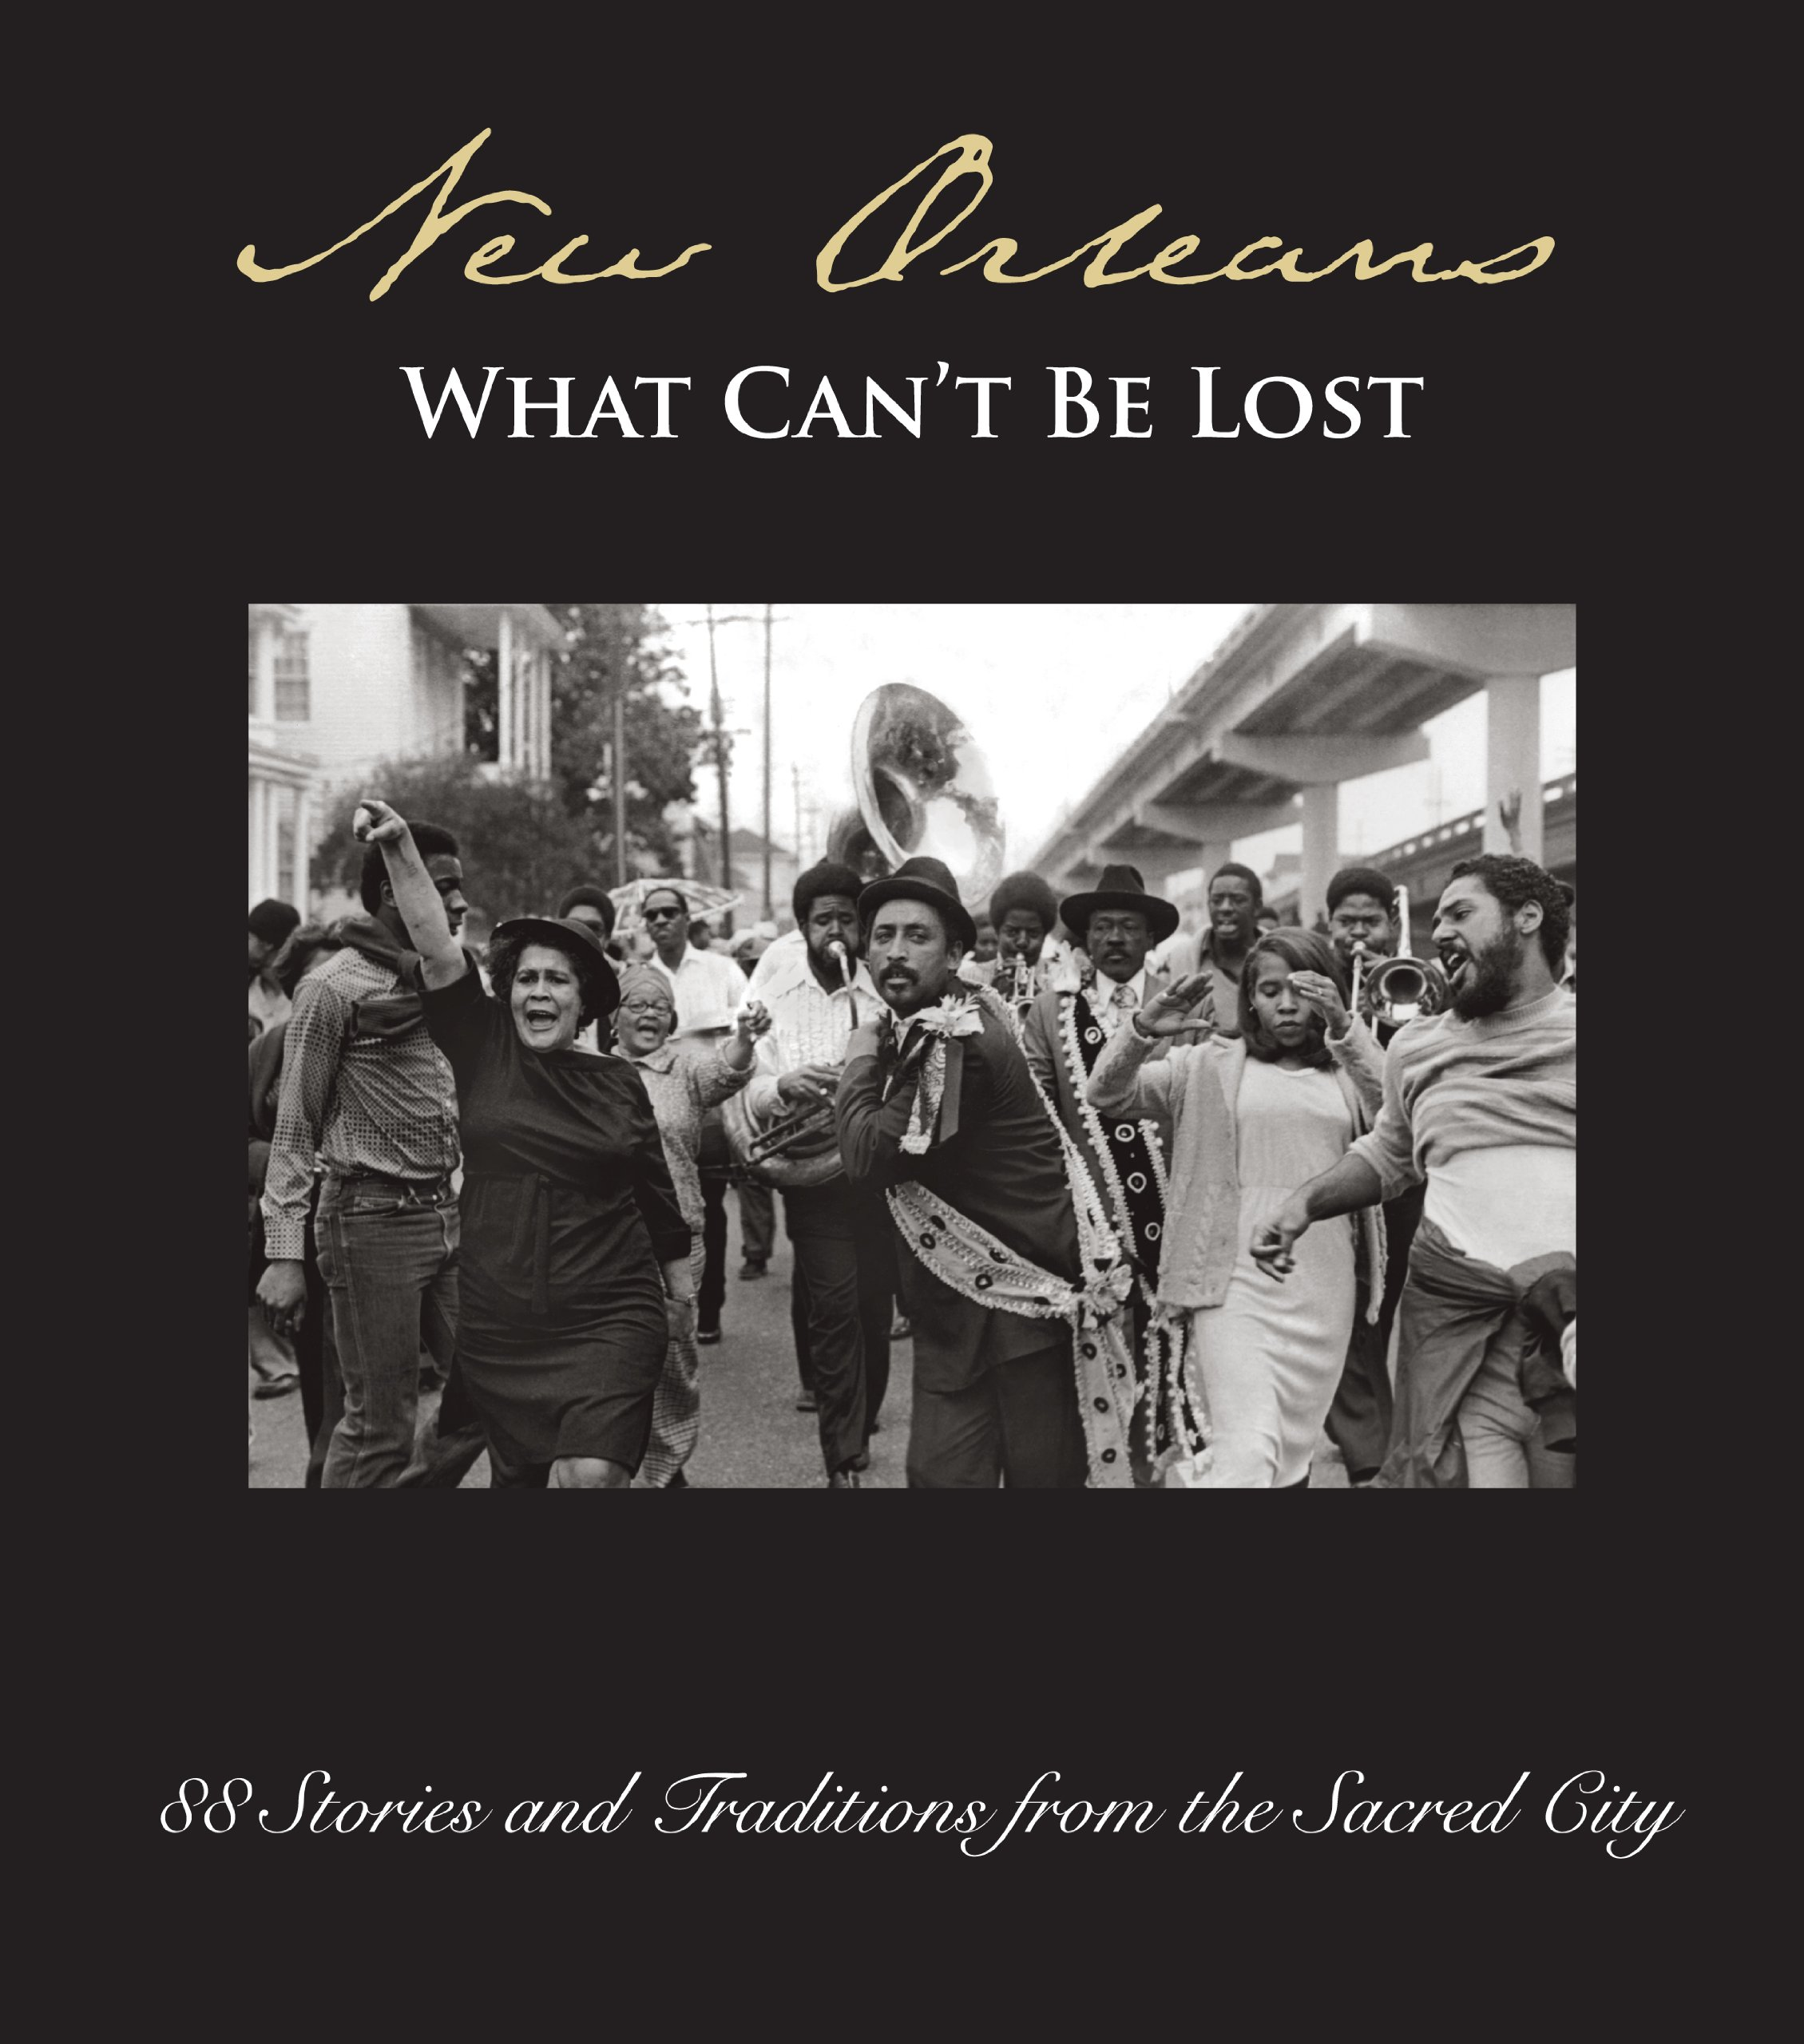 Download New Orleans:: What Can't Be Lost: 88 Stories and Traditions from the Sacred City PDF